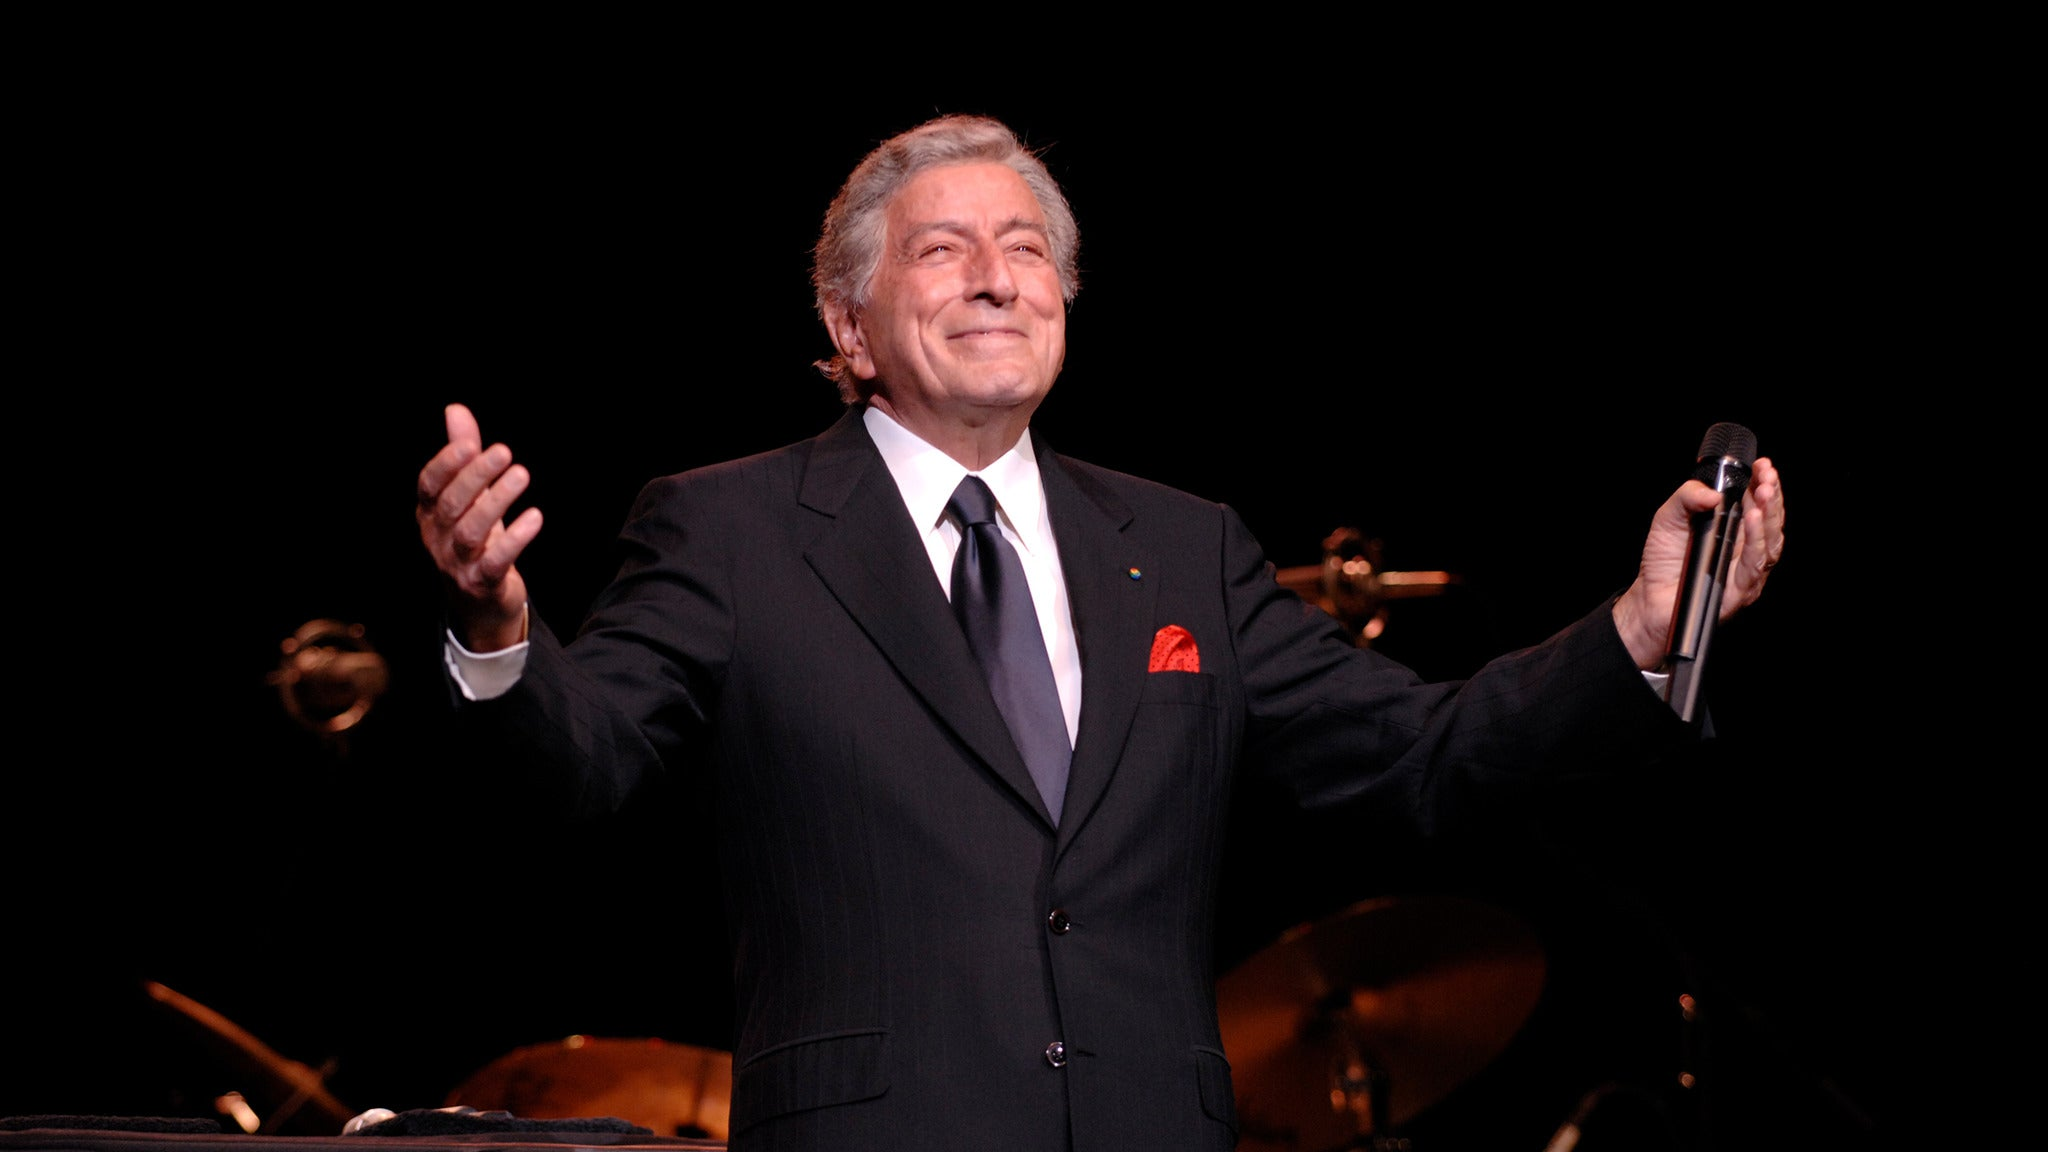 Tony Bennett - The I Left My Heart Tour